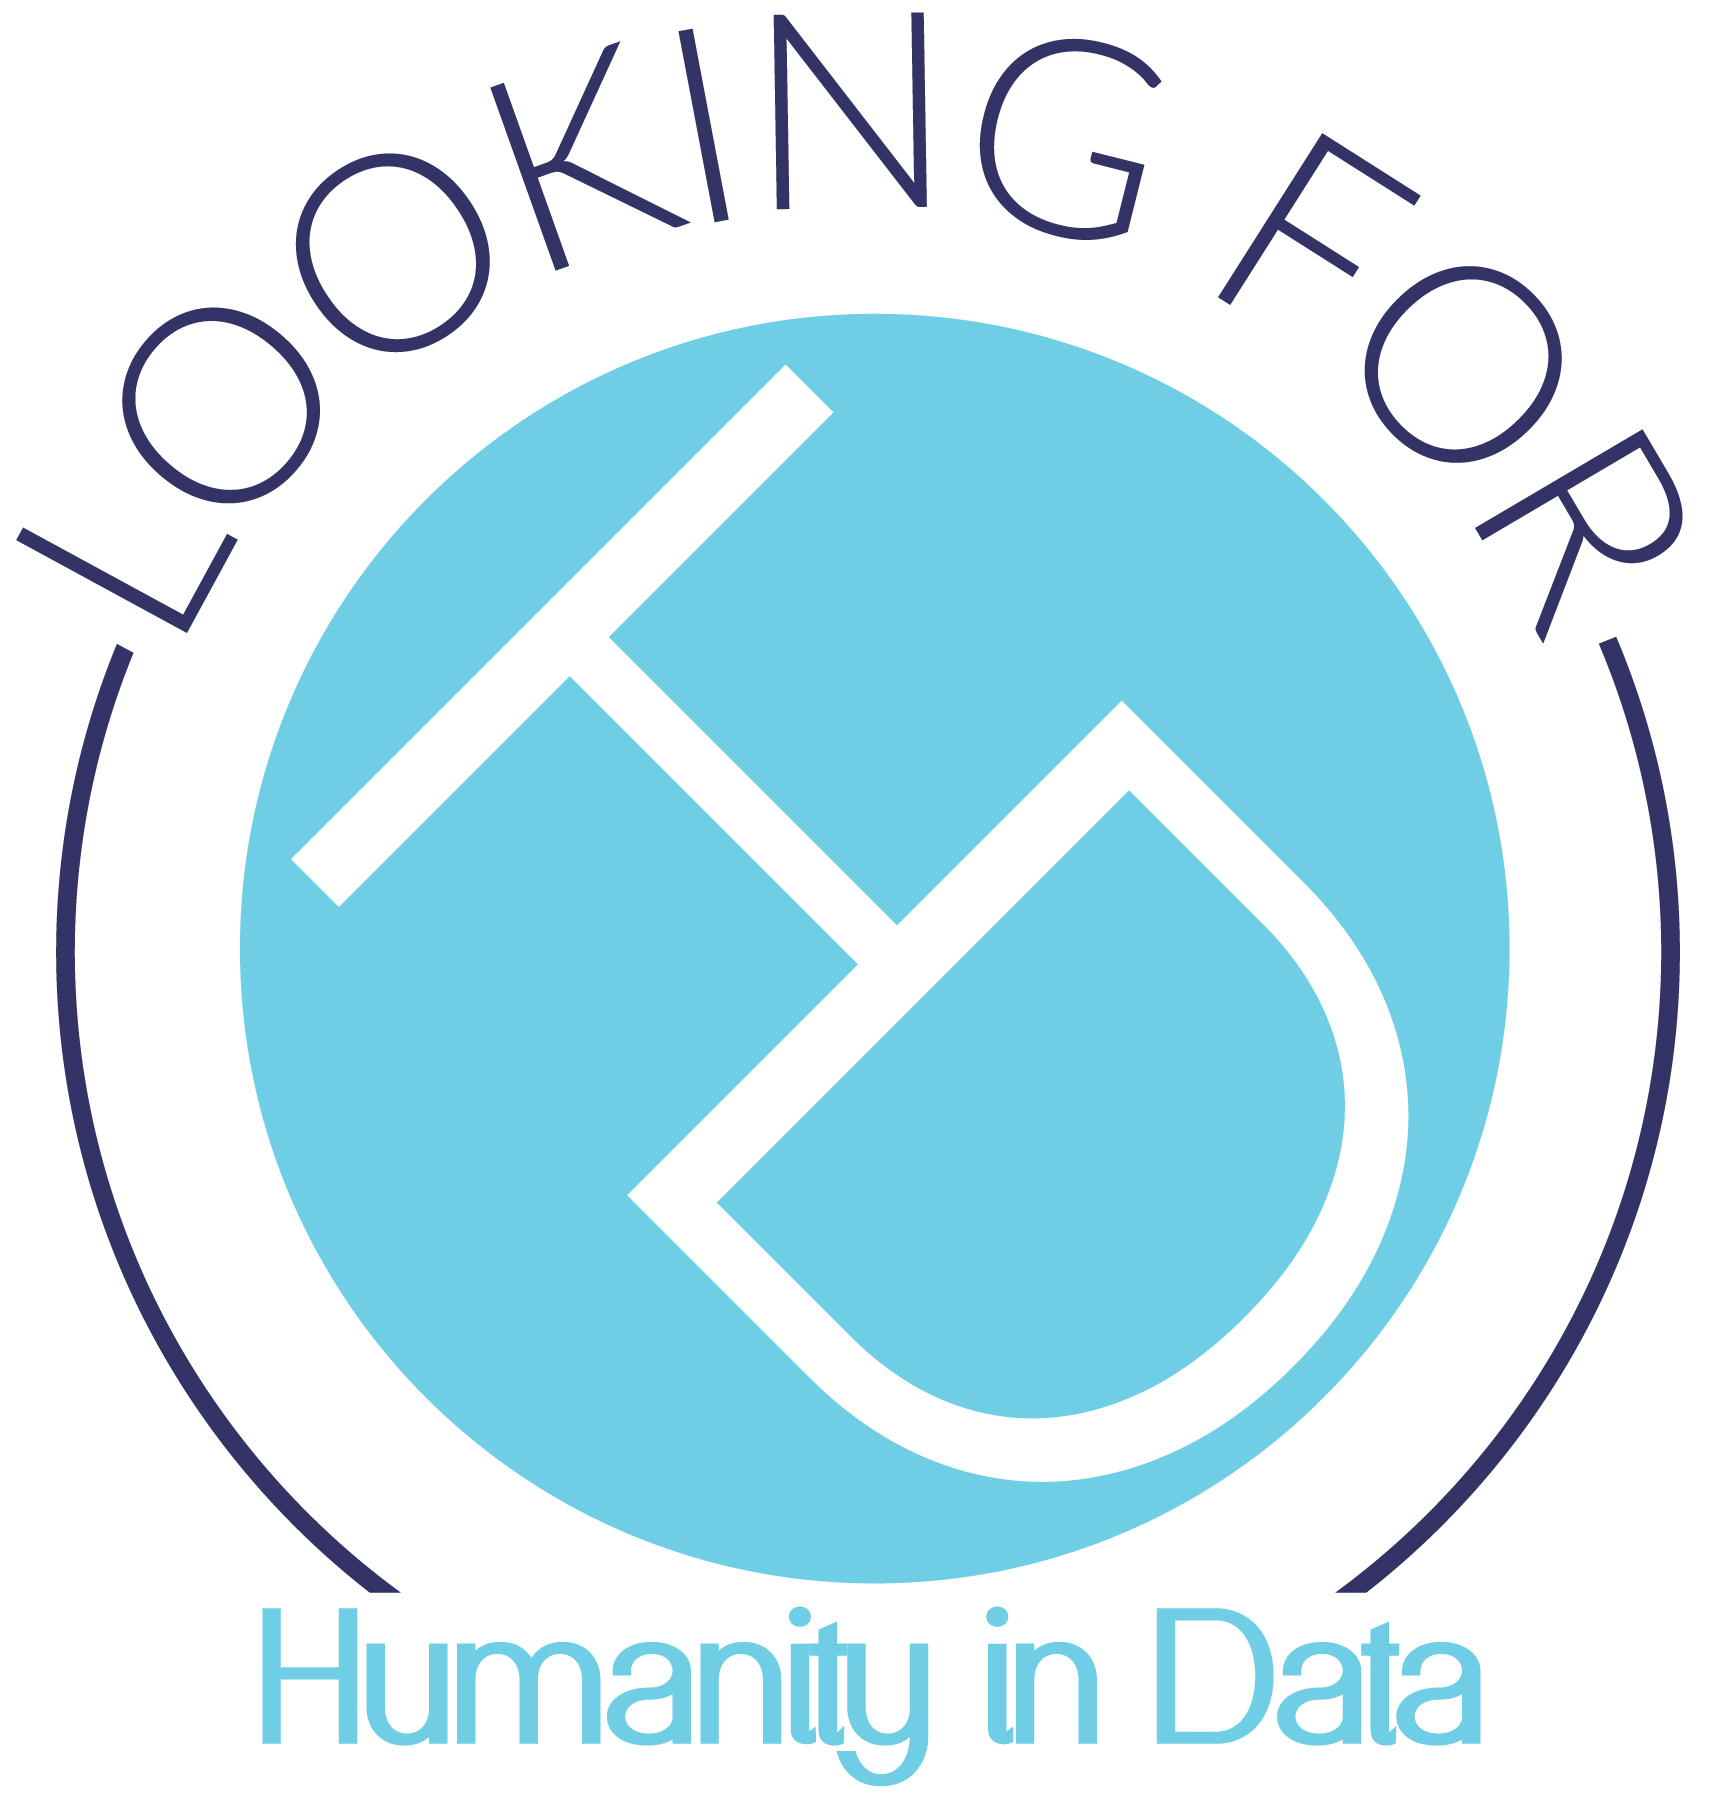 Looking for Humanity in Data